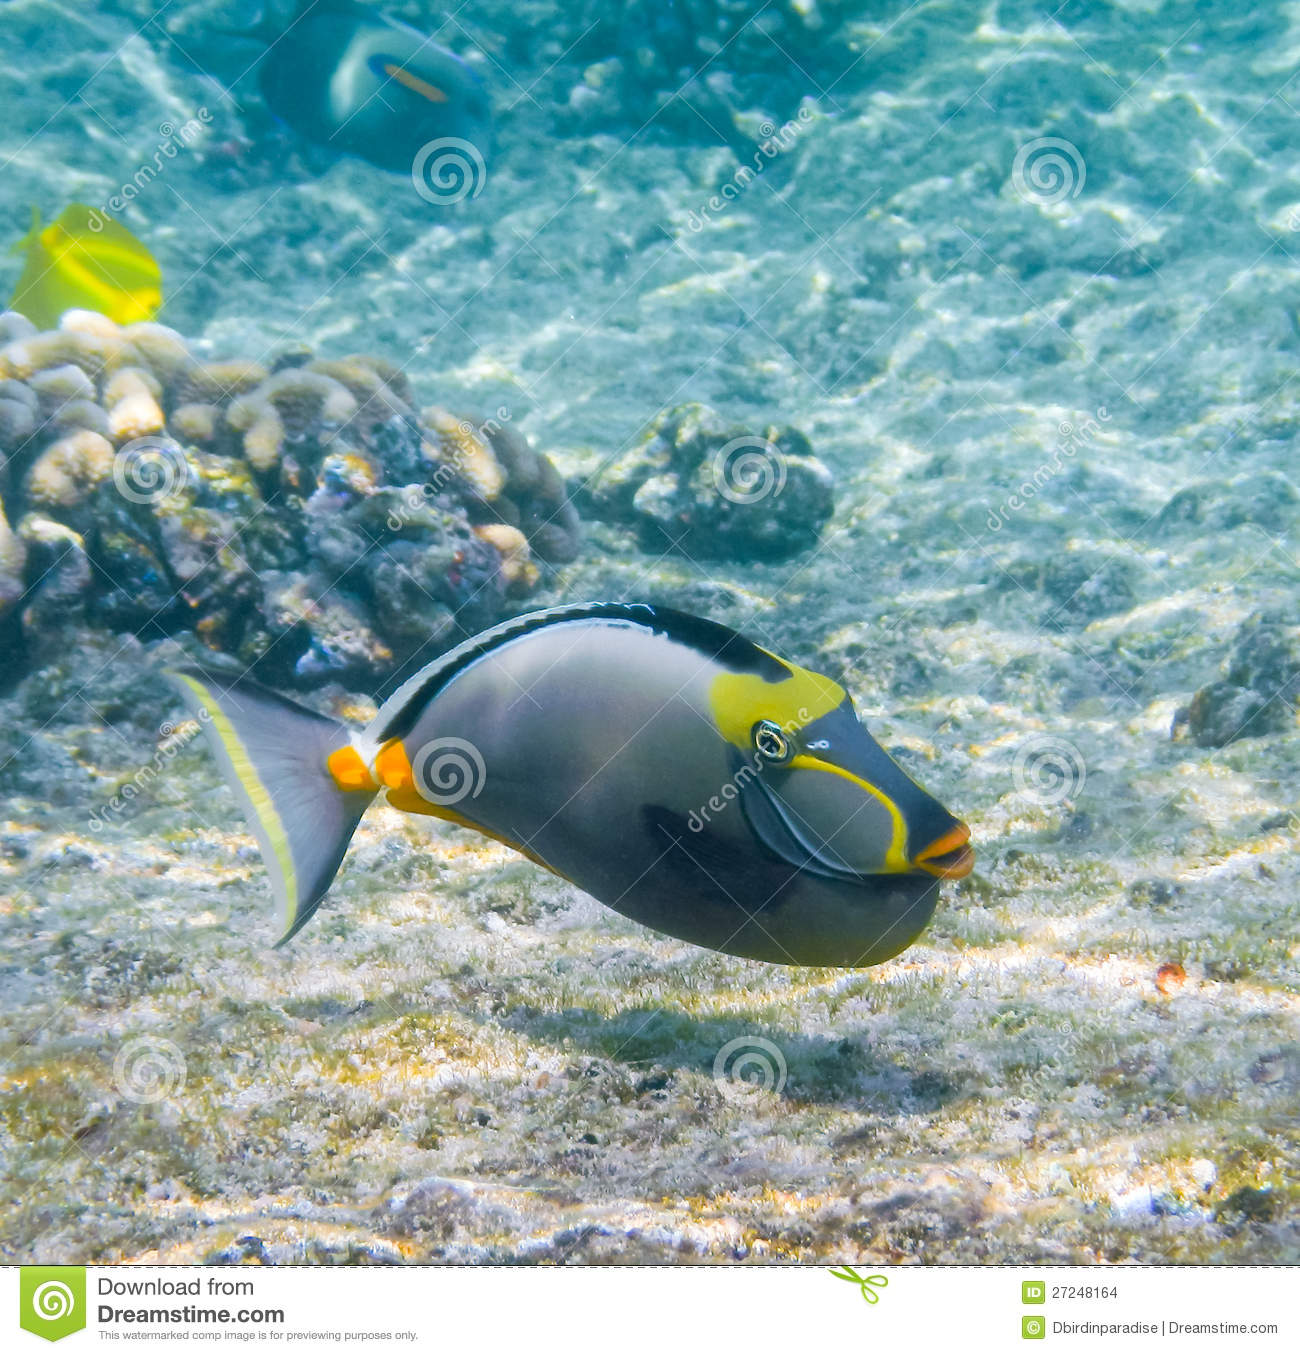 Freshwater fish in hawaii - Hawaiian Lipstick Tang Fish